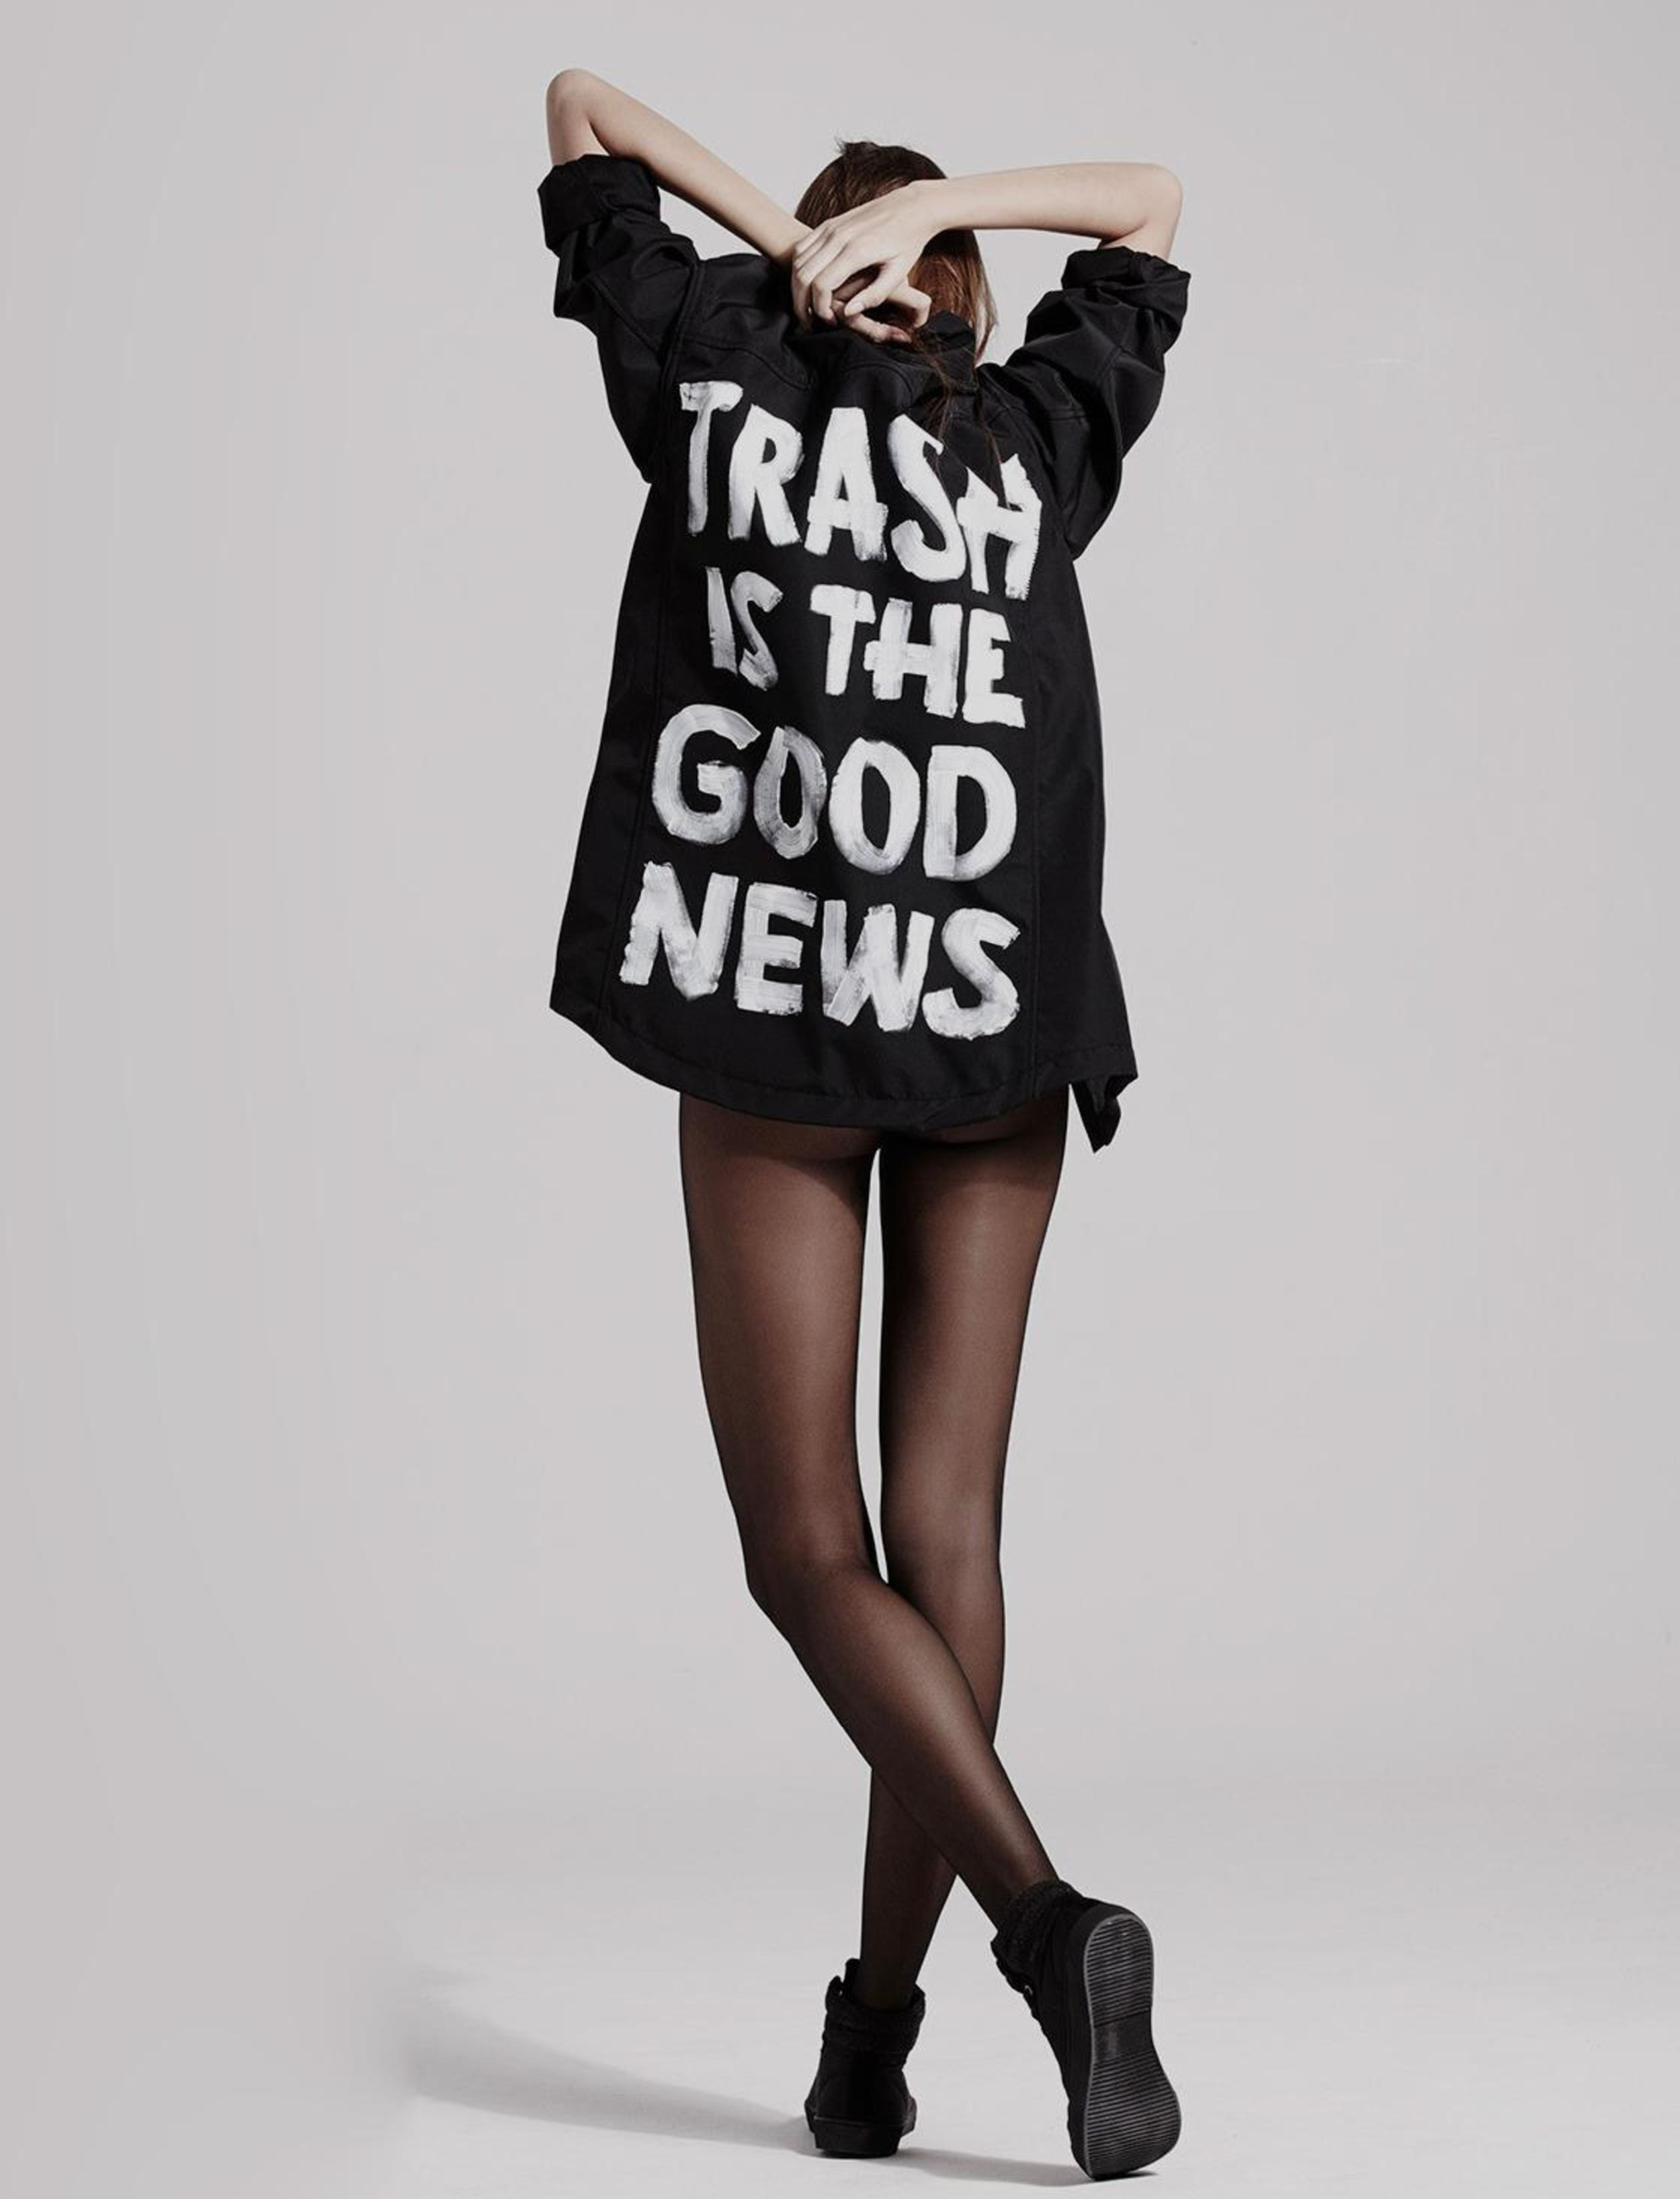 trash is the good news-page-001.jpg.png